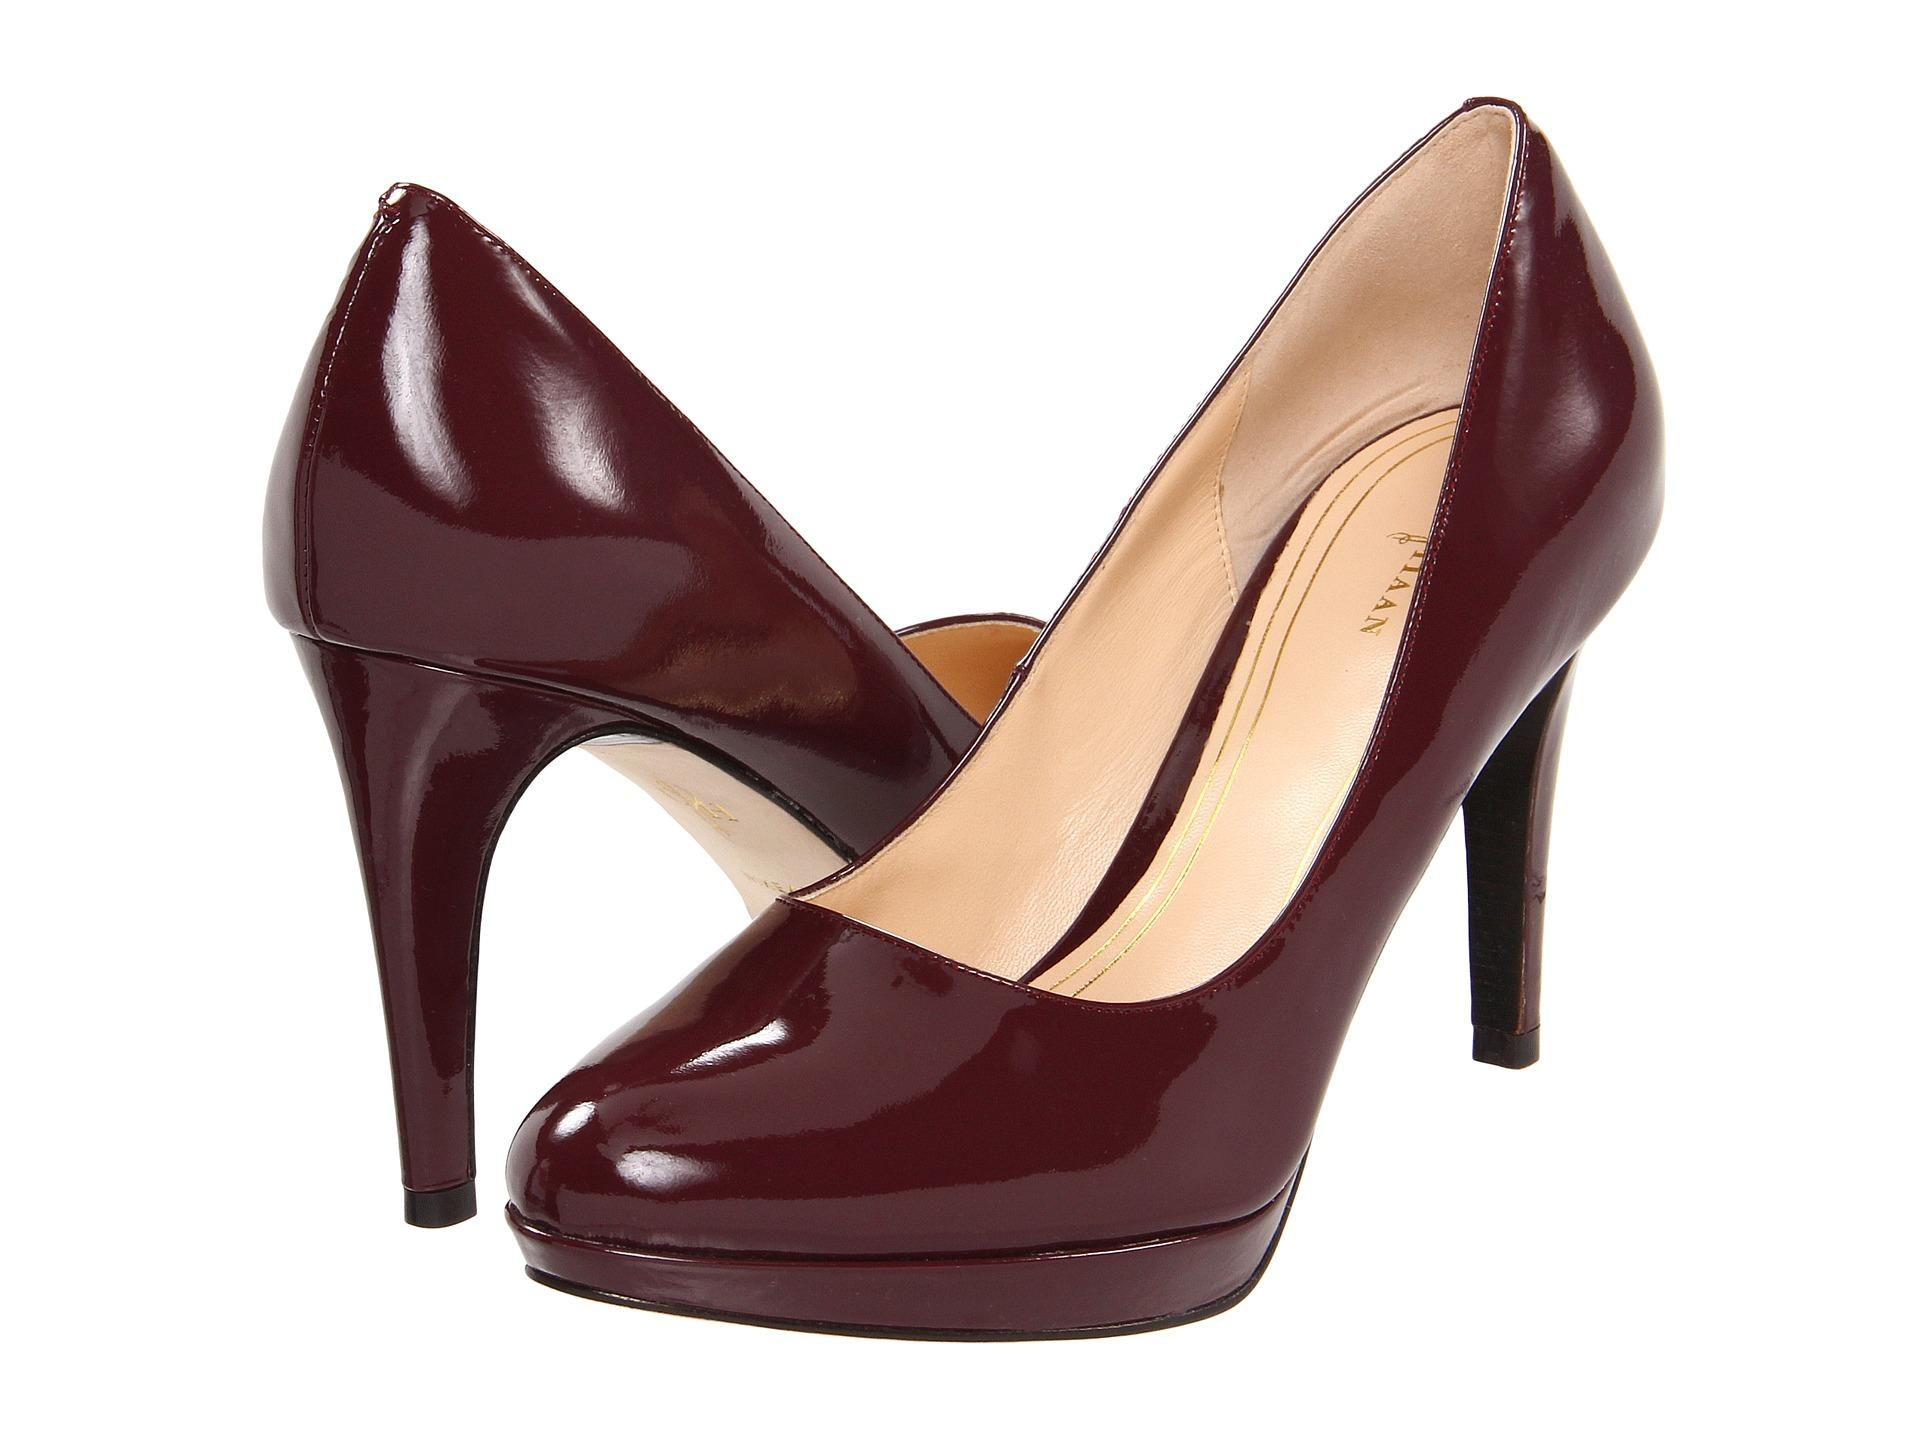 Maroon patent leather pumps